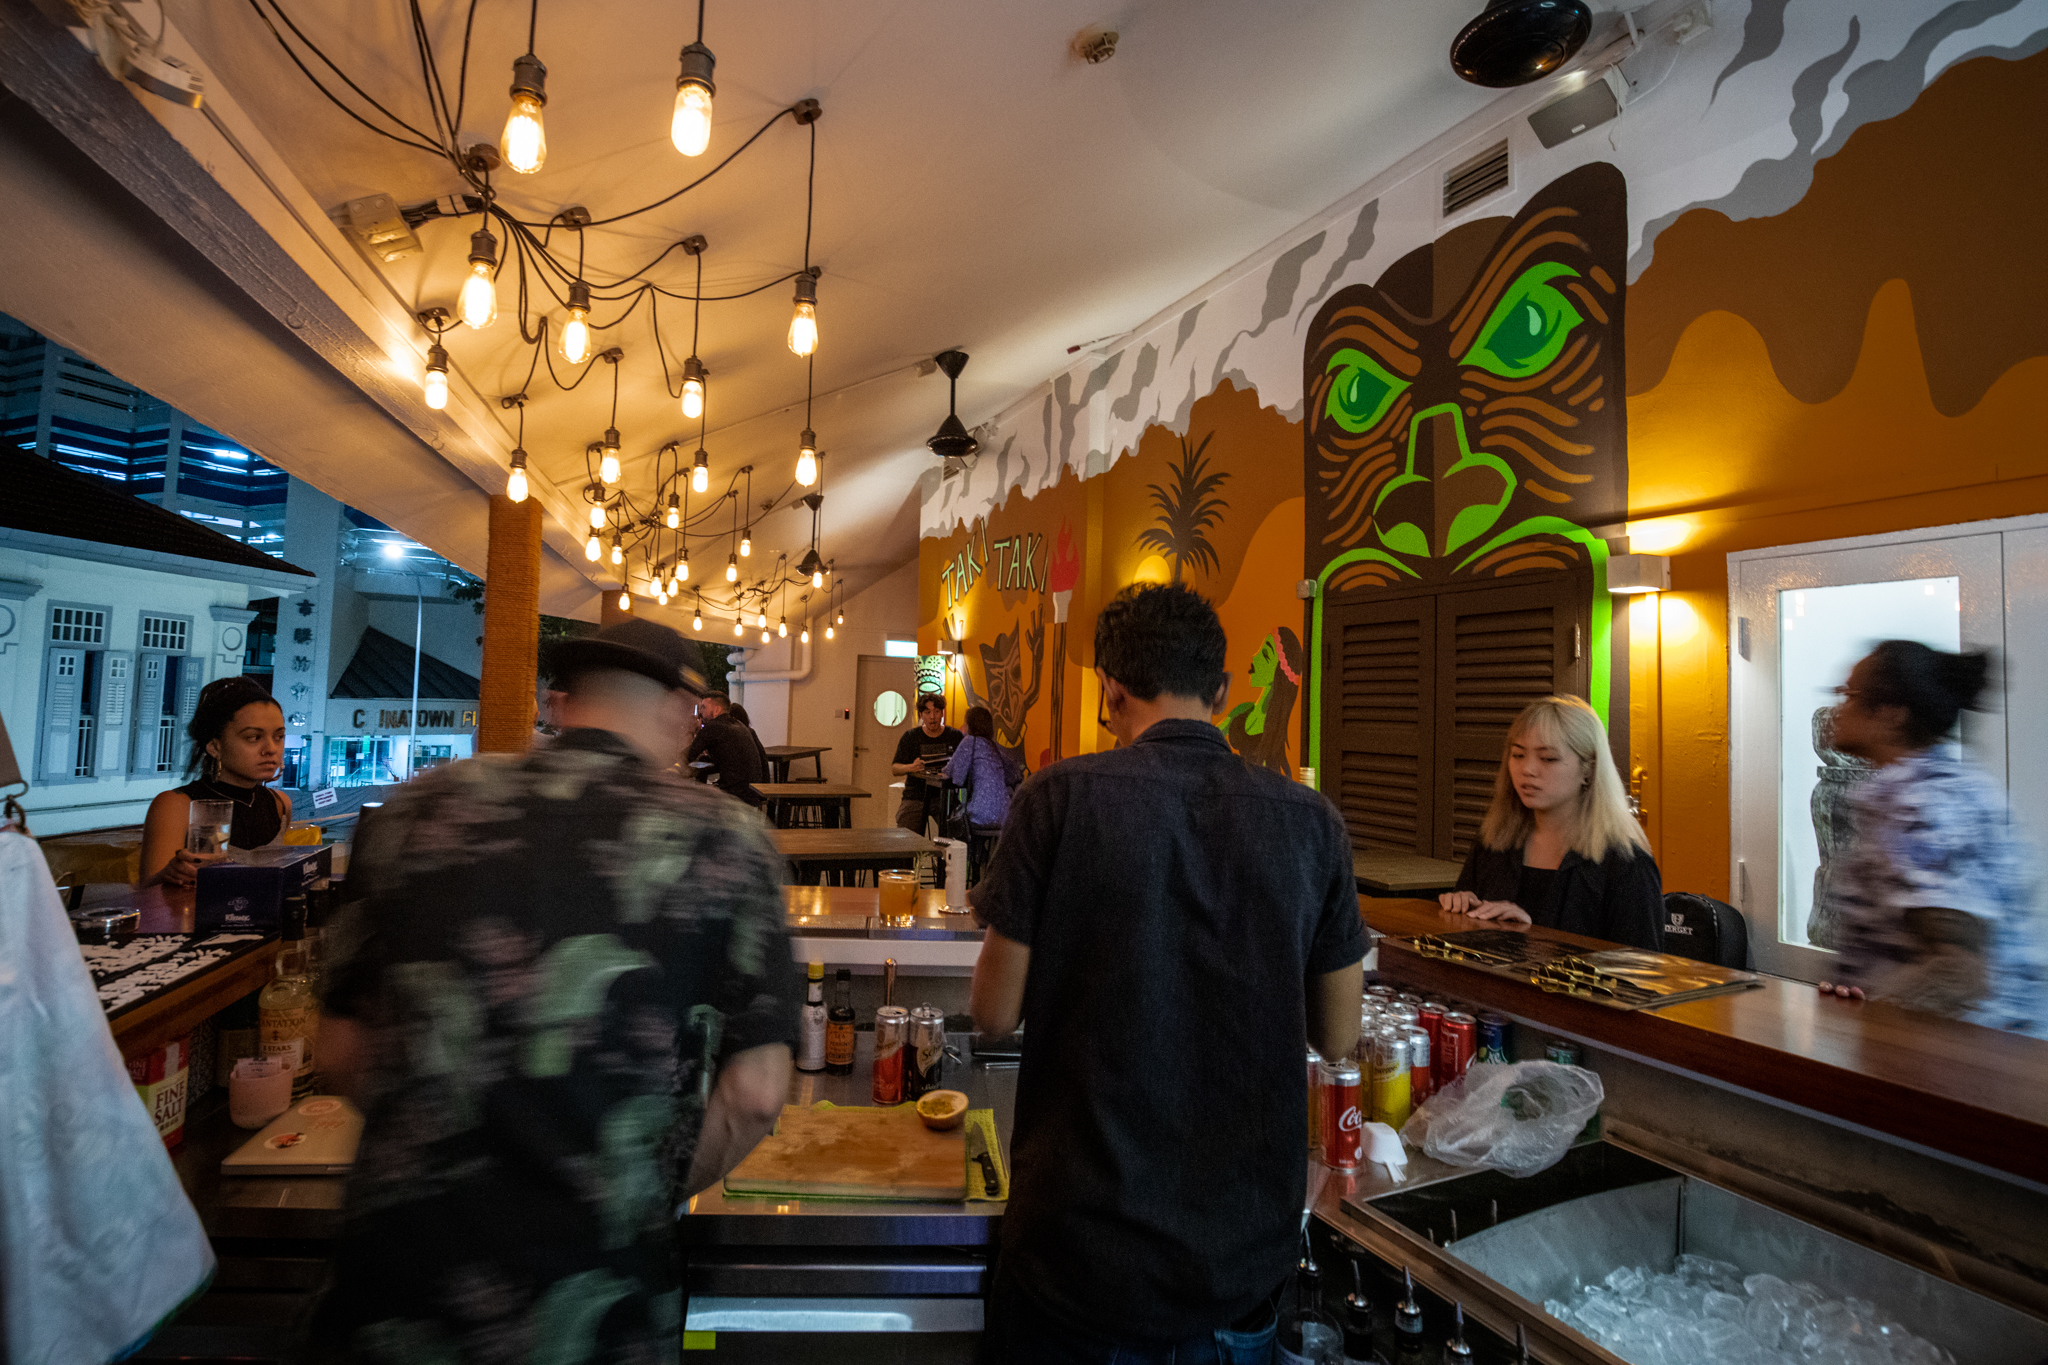 There's a new tiki bar in Keong Saik serving cocktails for $17